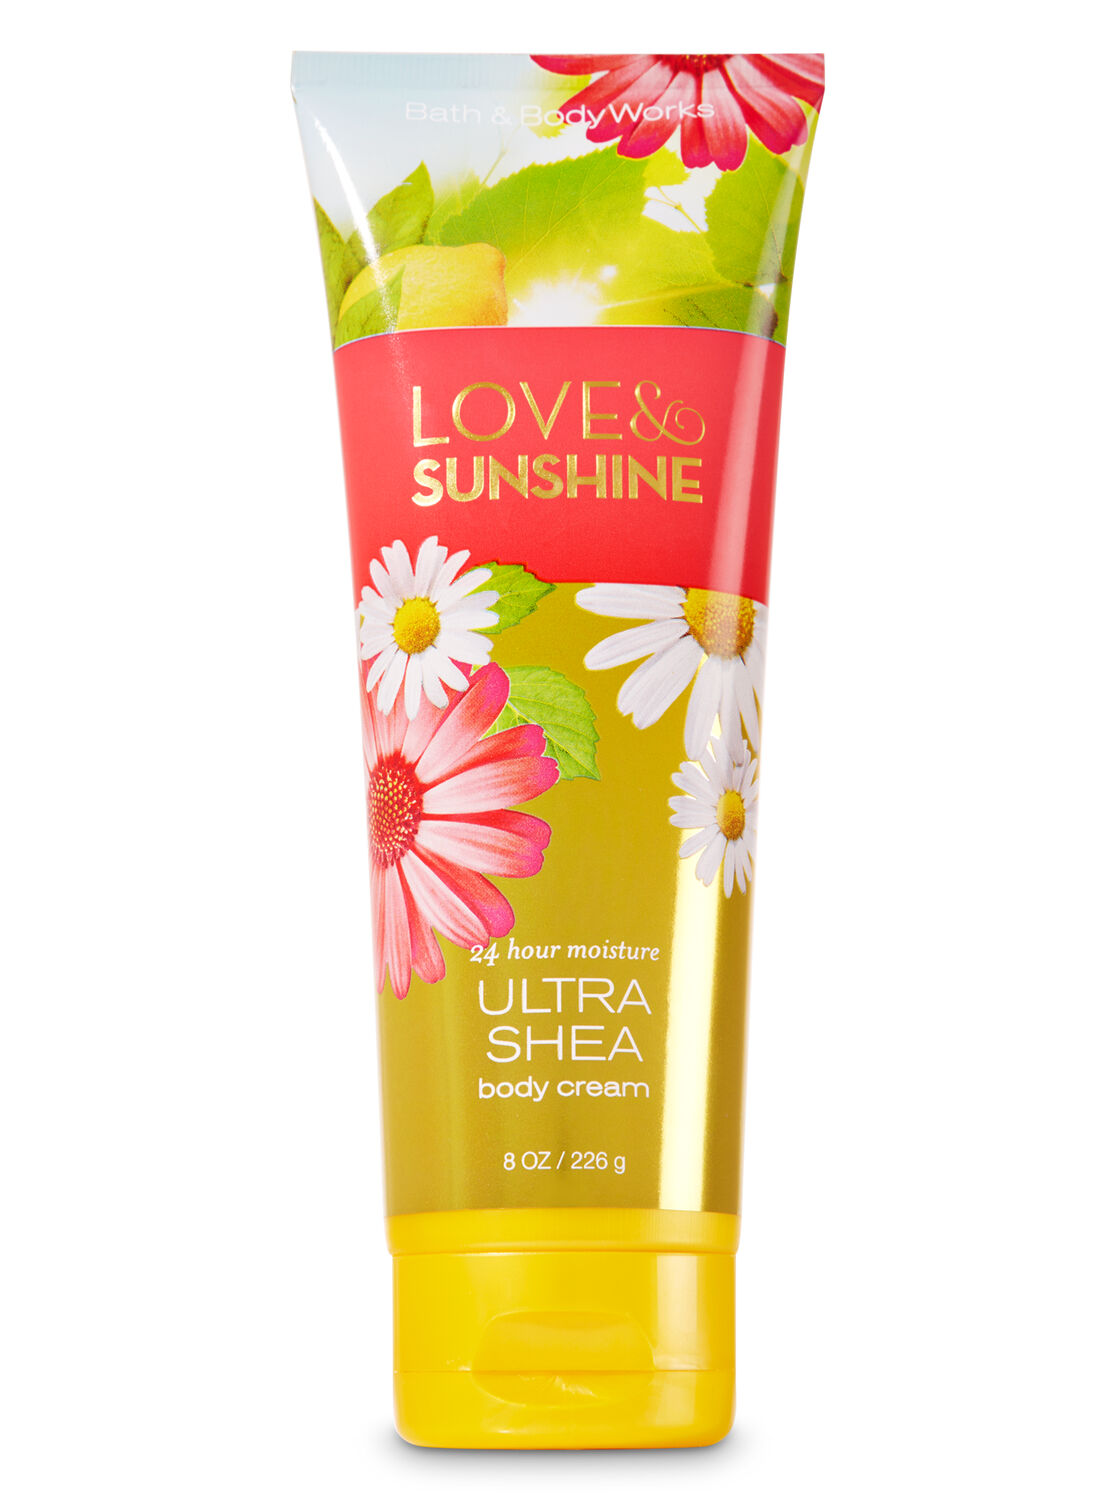 ad0c1bf4ed7 Love & Sunshine Ultra Shea Body Cream - Signature Collection | Bath & Body  Works